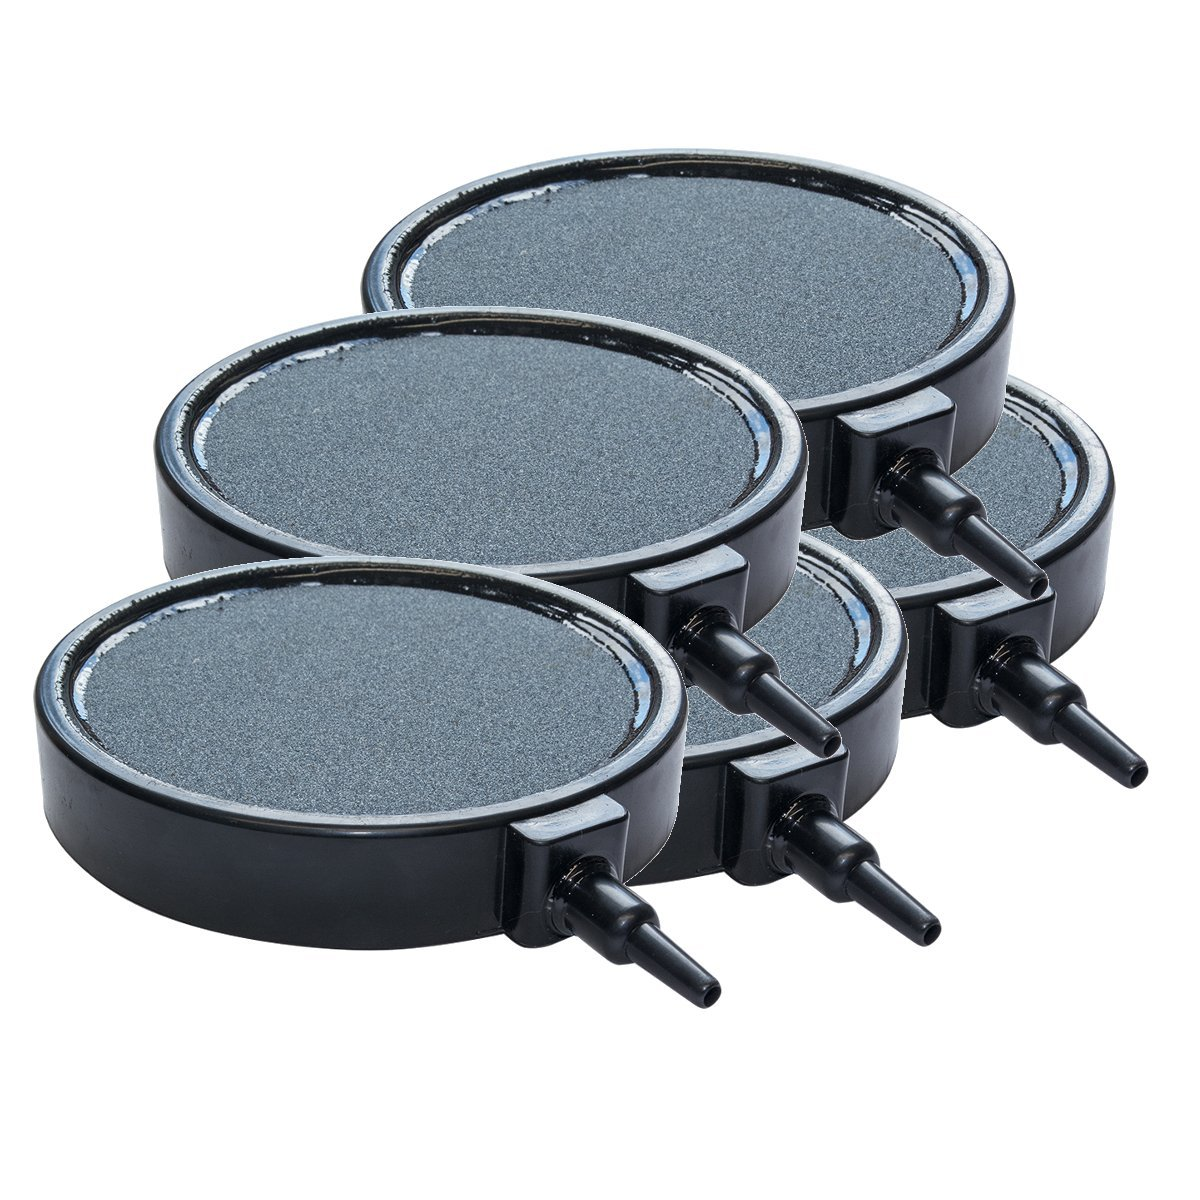 Pisces Pack of 5 100mm x 19mm Round Pond and Aquarium Air Stone Disc